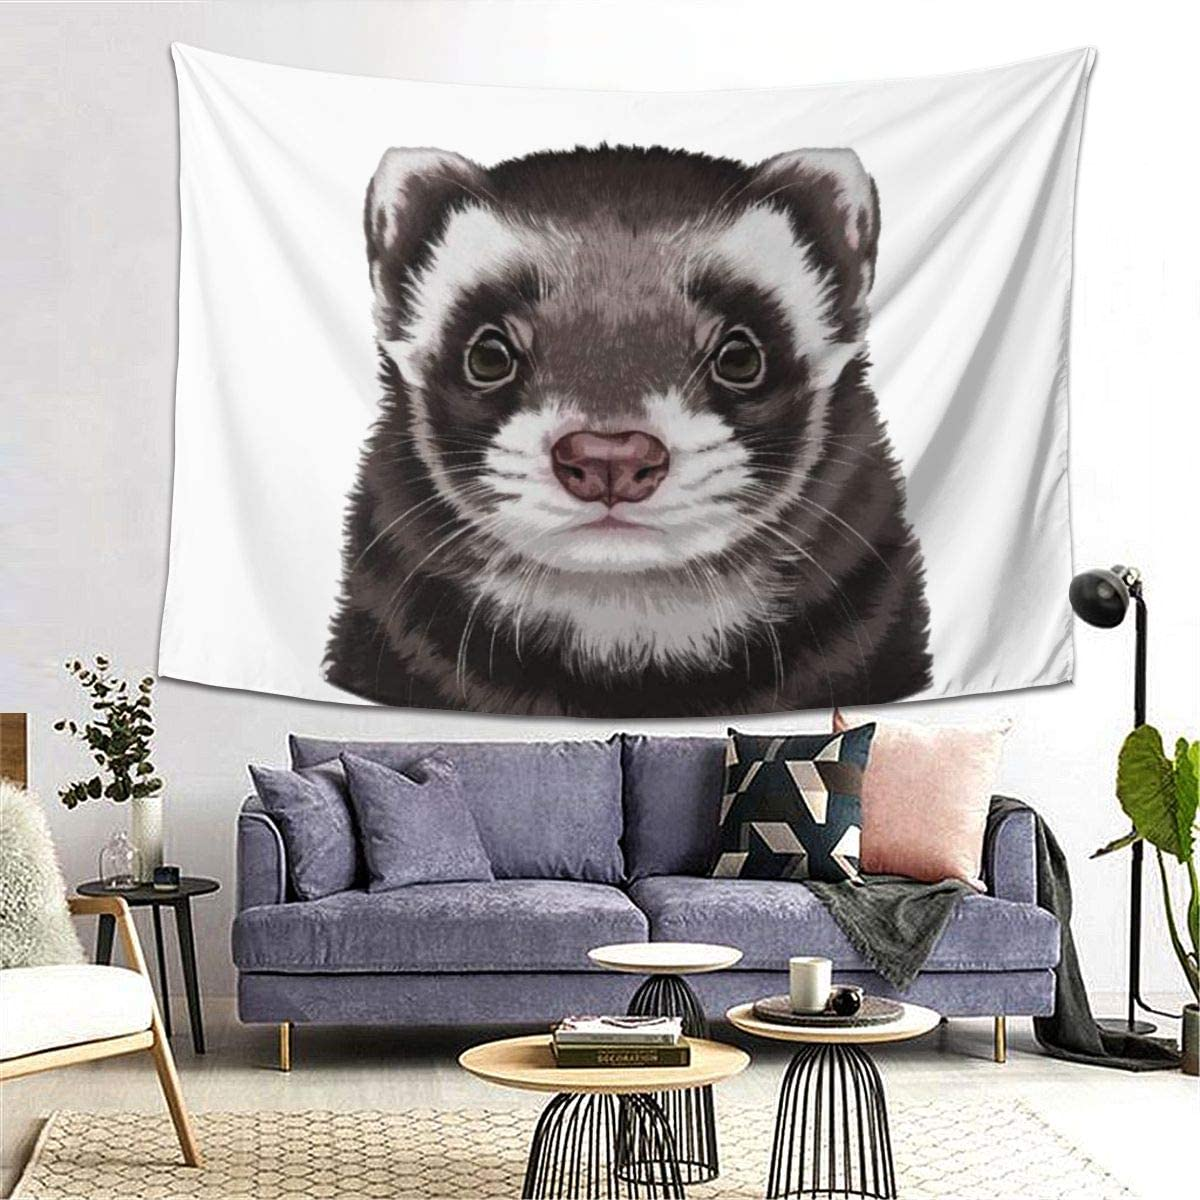 Marrtly Cute Animal Ferret Pet Tapestry Wall Hanging Decorative Wall Art Tapestries for Bedroom,Living Room,Home Decoration 80 X60 in